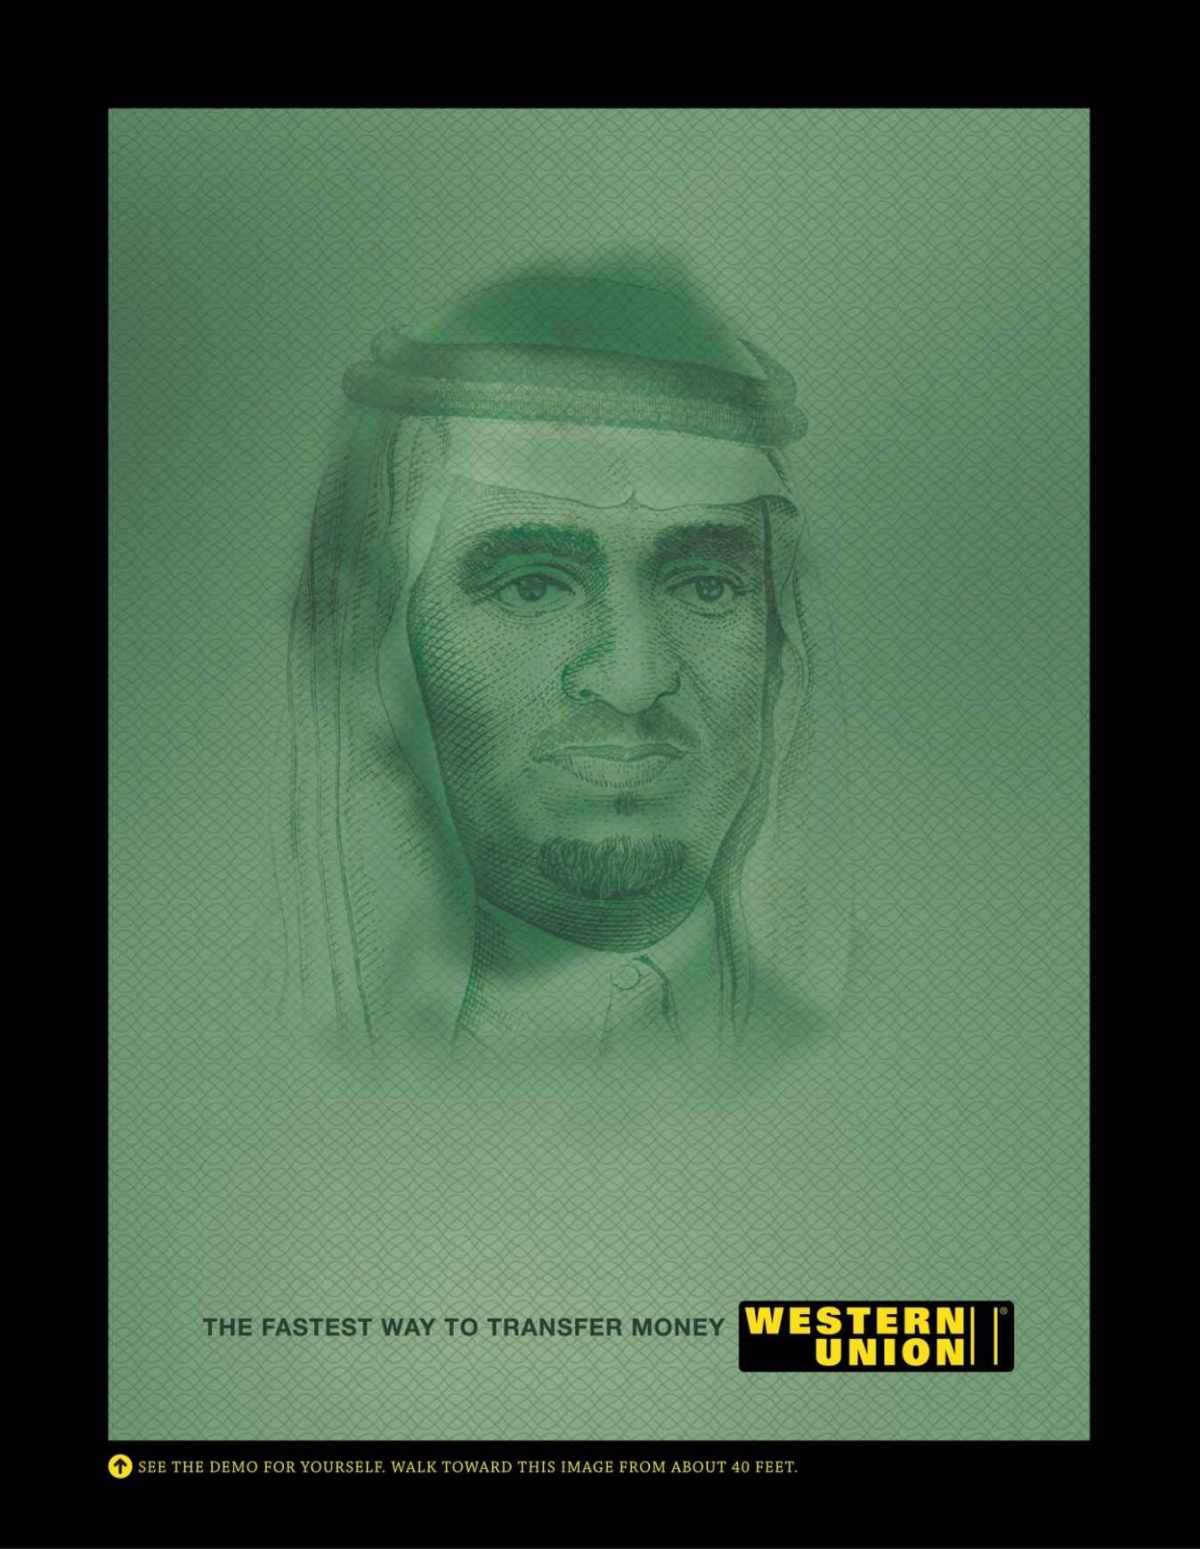 western_union_money_transfer_-_western_union_demo_posters_-_2_of_3_-_lincoln_fahd_-_mccann_worldgroup_india_-_mumbai_aotw